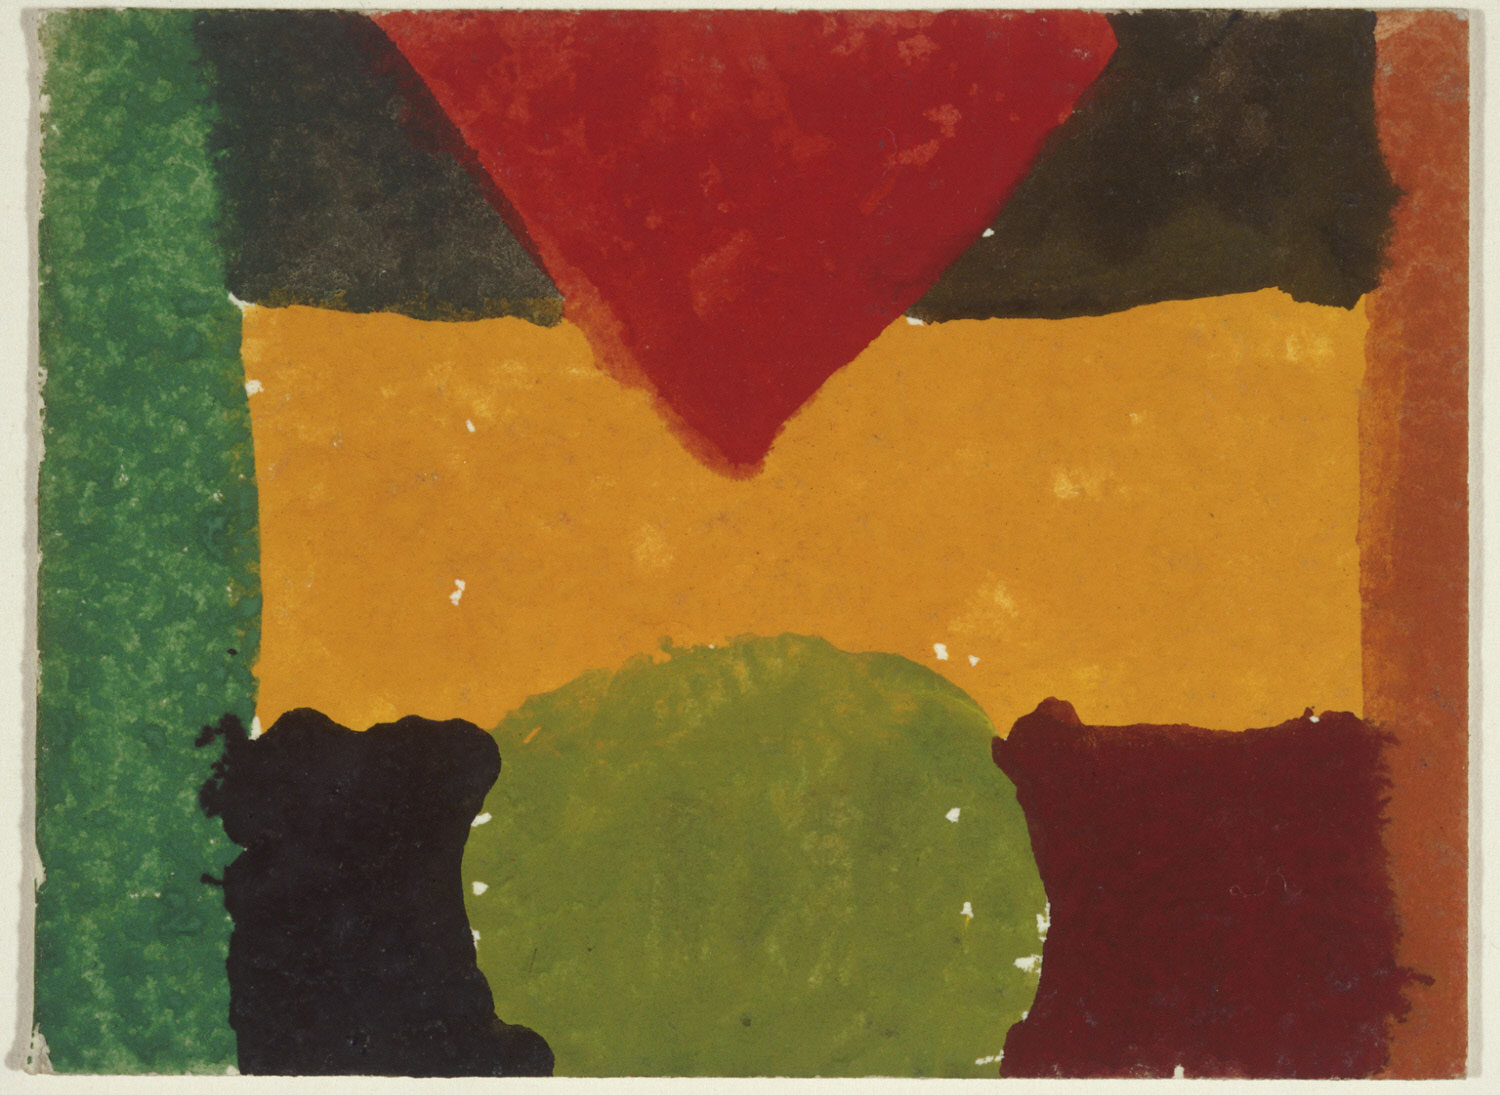 Abstract Study with Red Triangle, Yellow Bar, and Green Circle